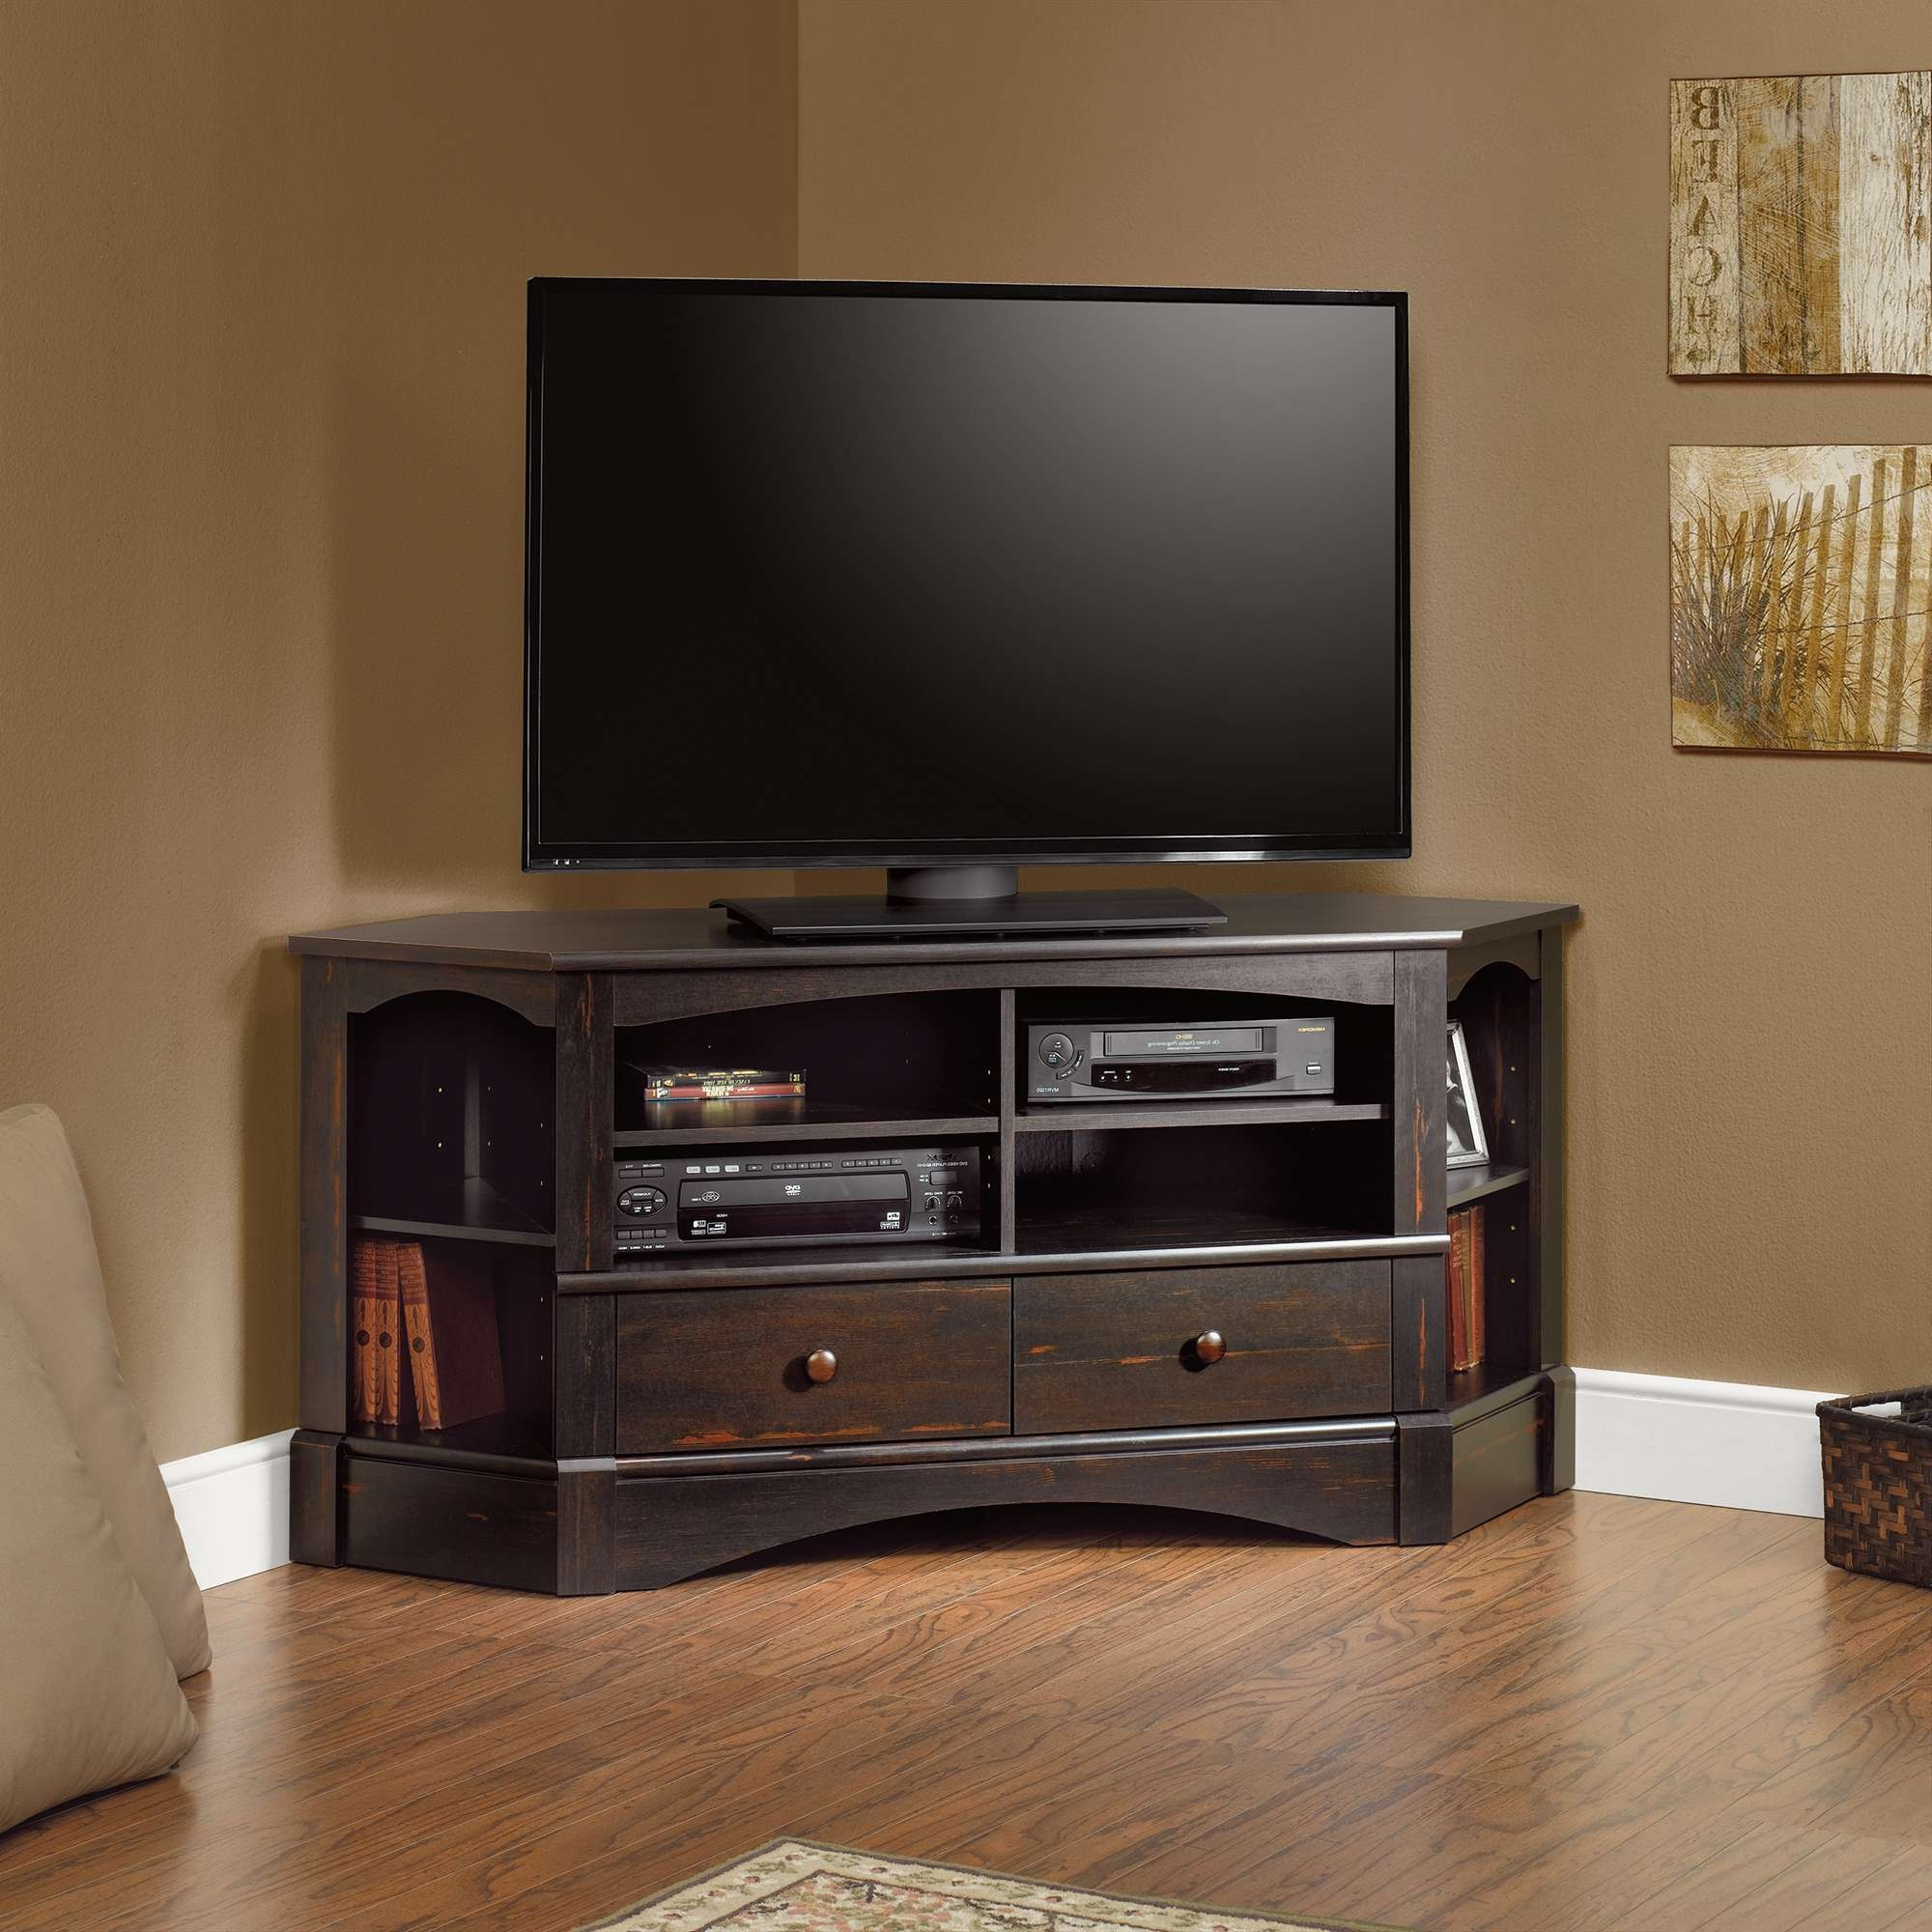 Tv Stand : Imposing Led Tv Standture Image Inspirations Dark Brown Intended For Dark Brown Corner Tv Stands (View 2 of 20)